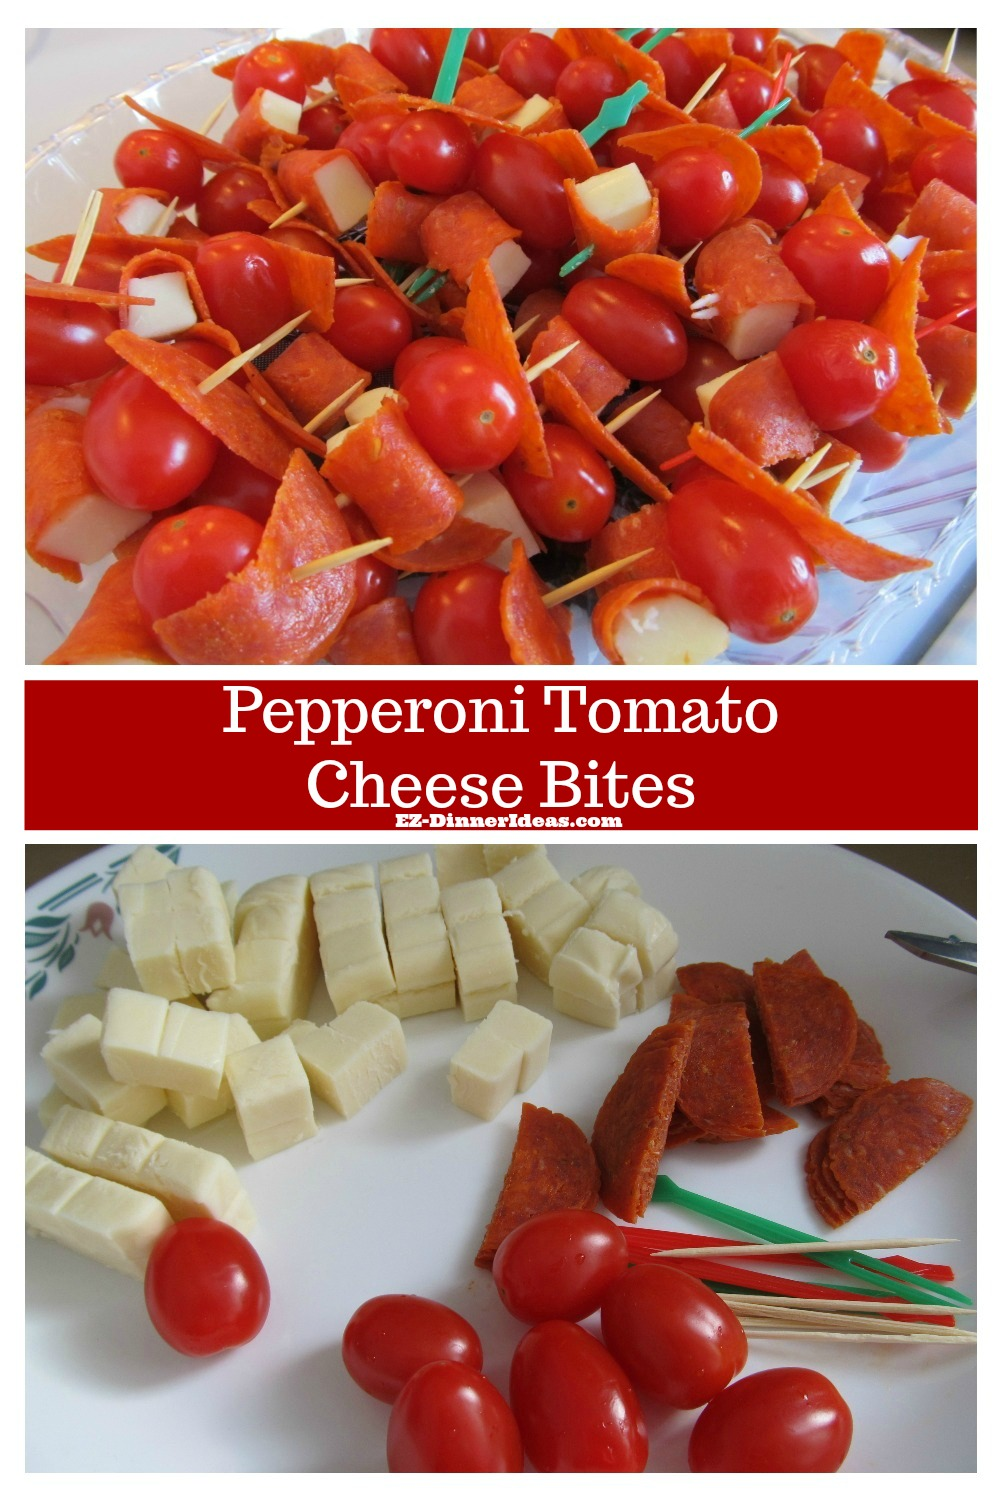 Cheese finger food is always on a party table.  But this one is creative and beautiful.  Try this pepperoni tomato cheese bites.  Your guests will appreciate your extra effort.